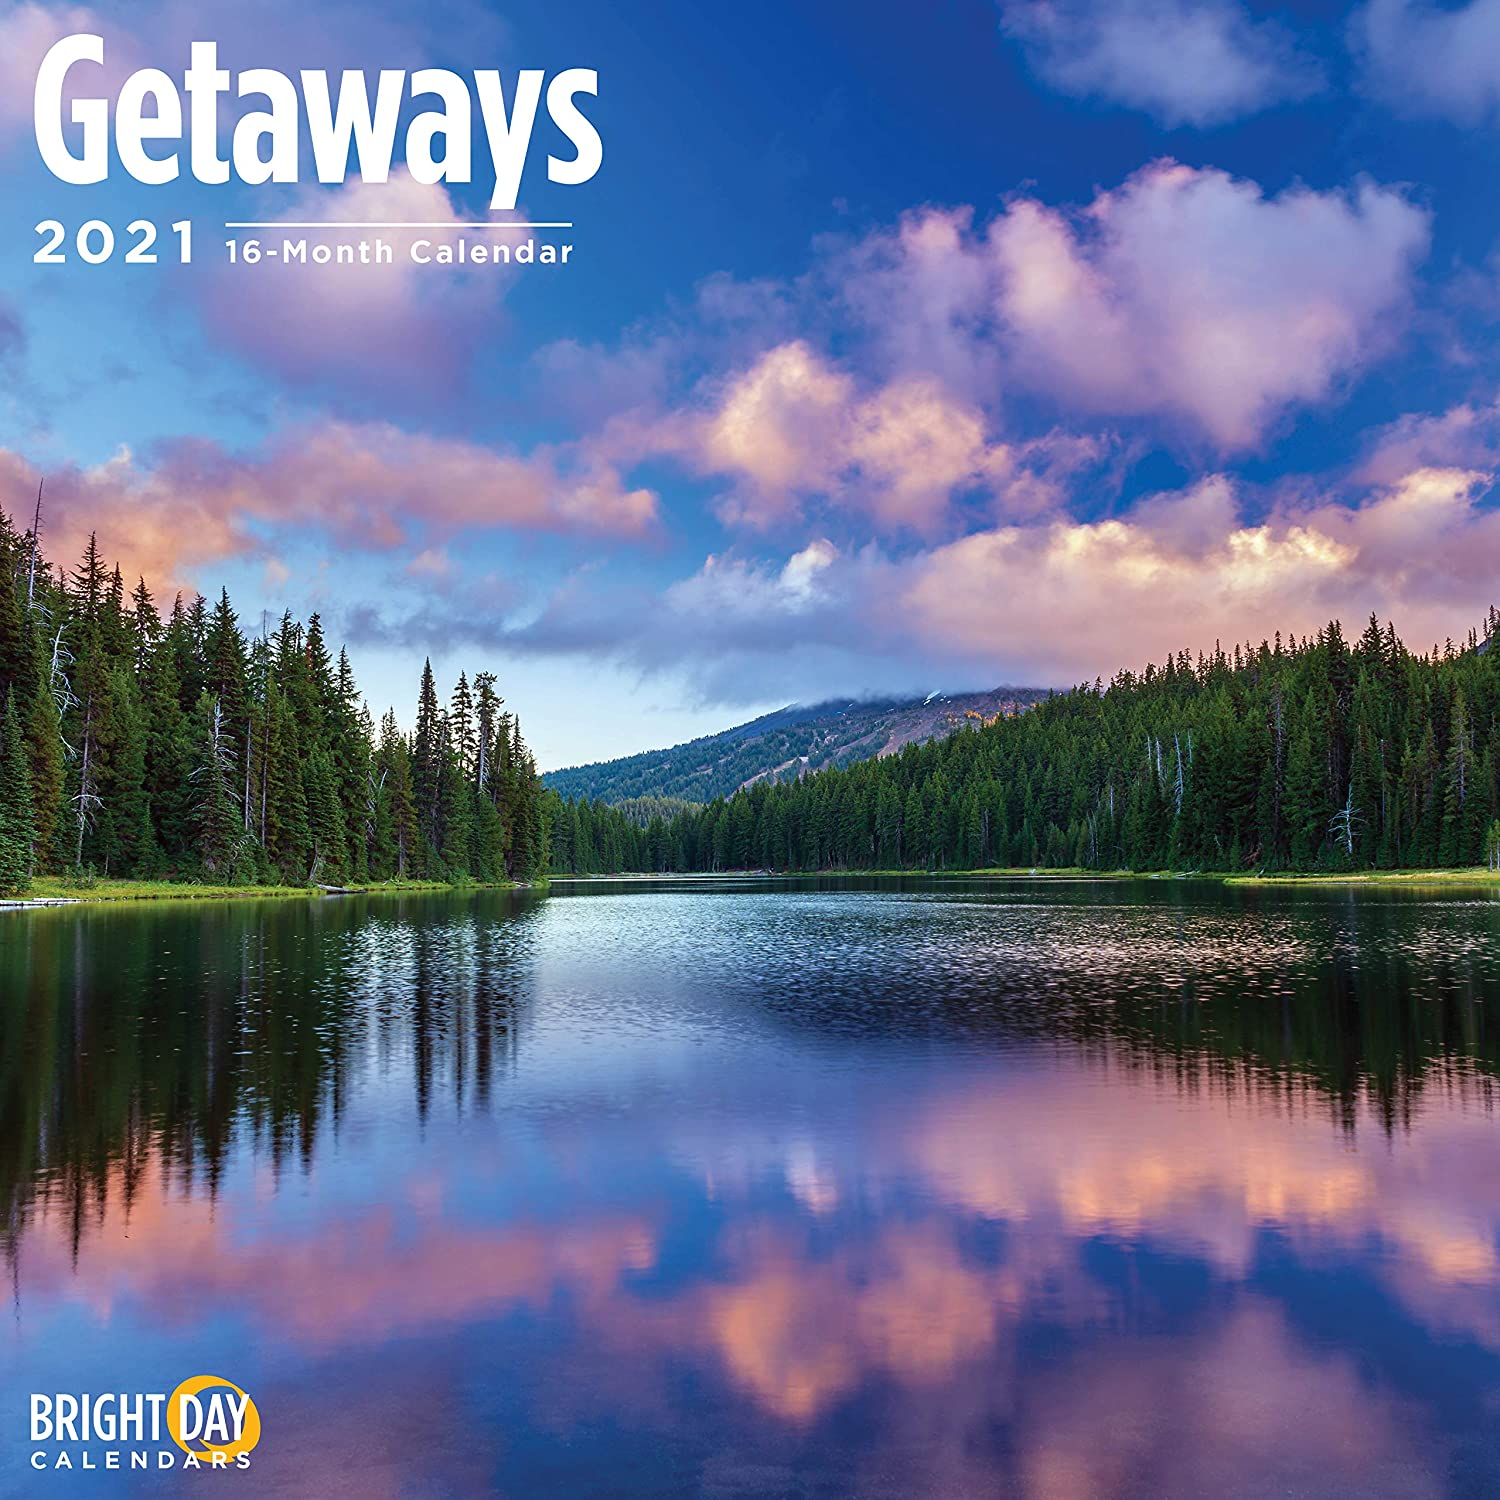 2021 Getaways Wall Calendar by Bright Day, 12 x 12 Inch, Tropical Paradise Beach Vacation